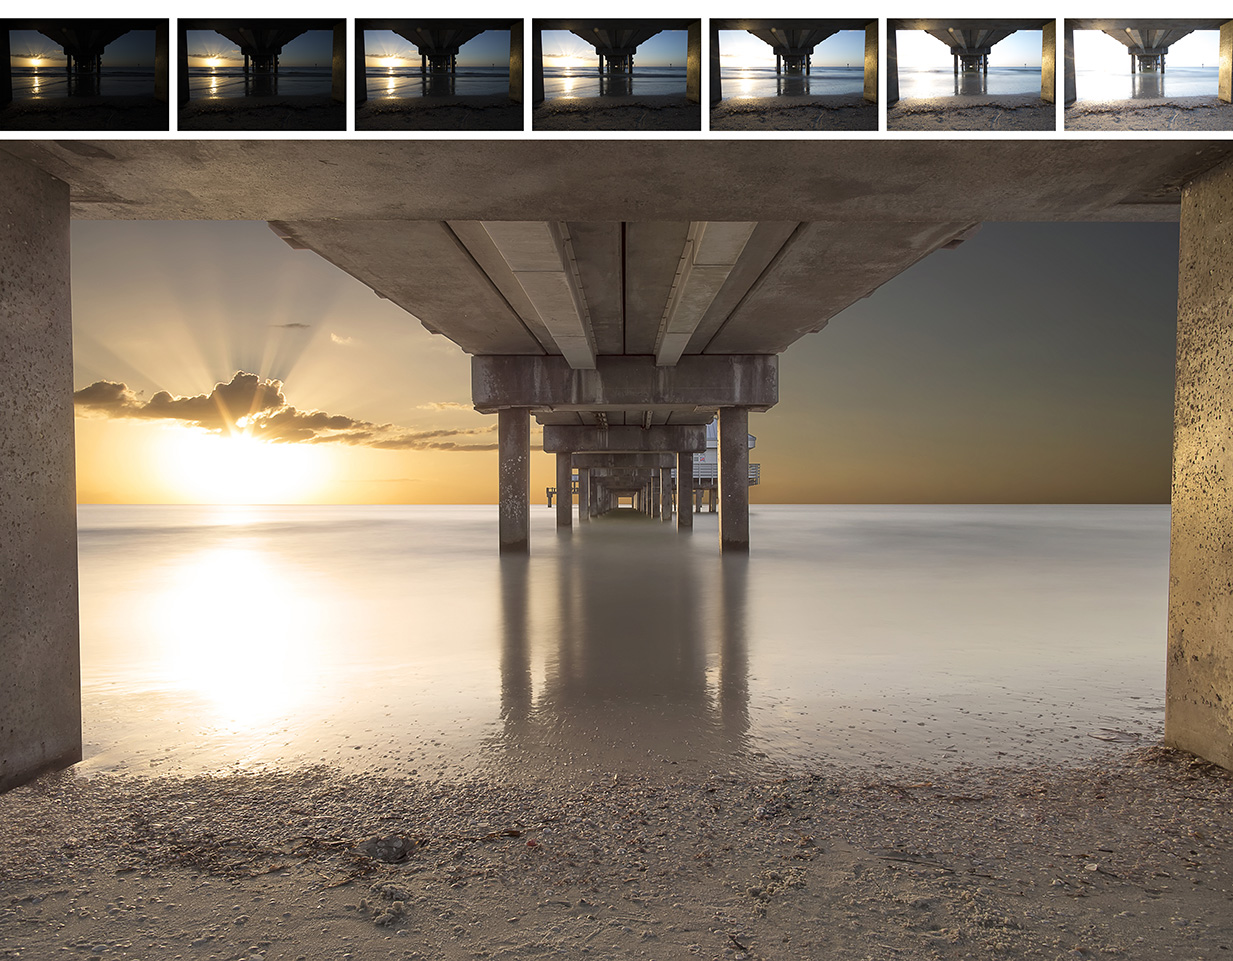 The image above shows the seven exposures used to create the completed image below them. Note how by themselves, any of the seven exposures are either too dark or far too bright. When digitally tone-mapped together however, a much more compelling image can be created. Pier 60, Clearwater Beach, Florida.